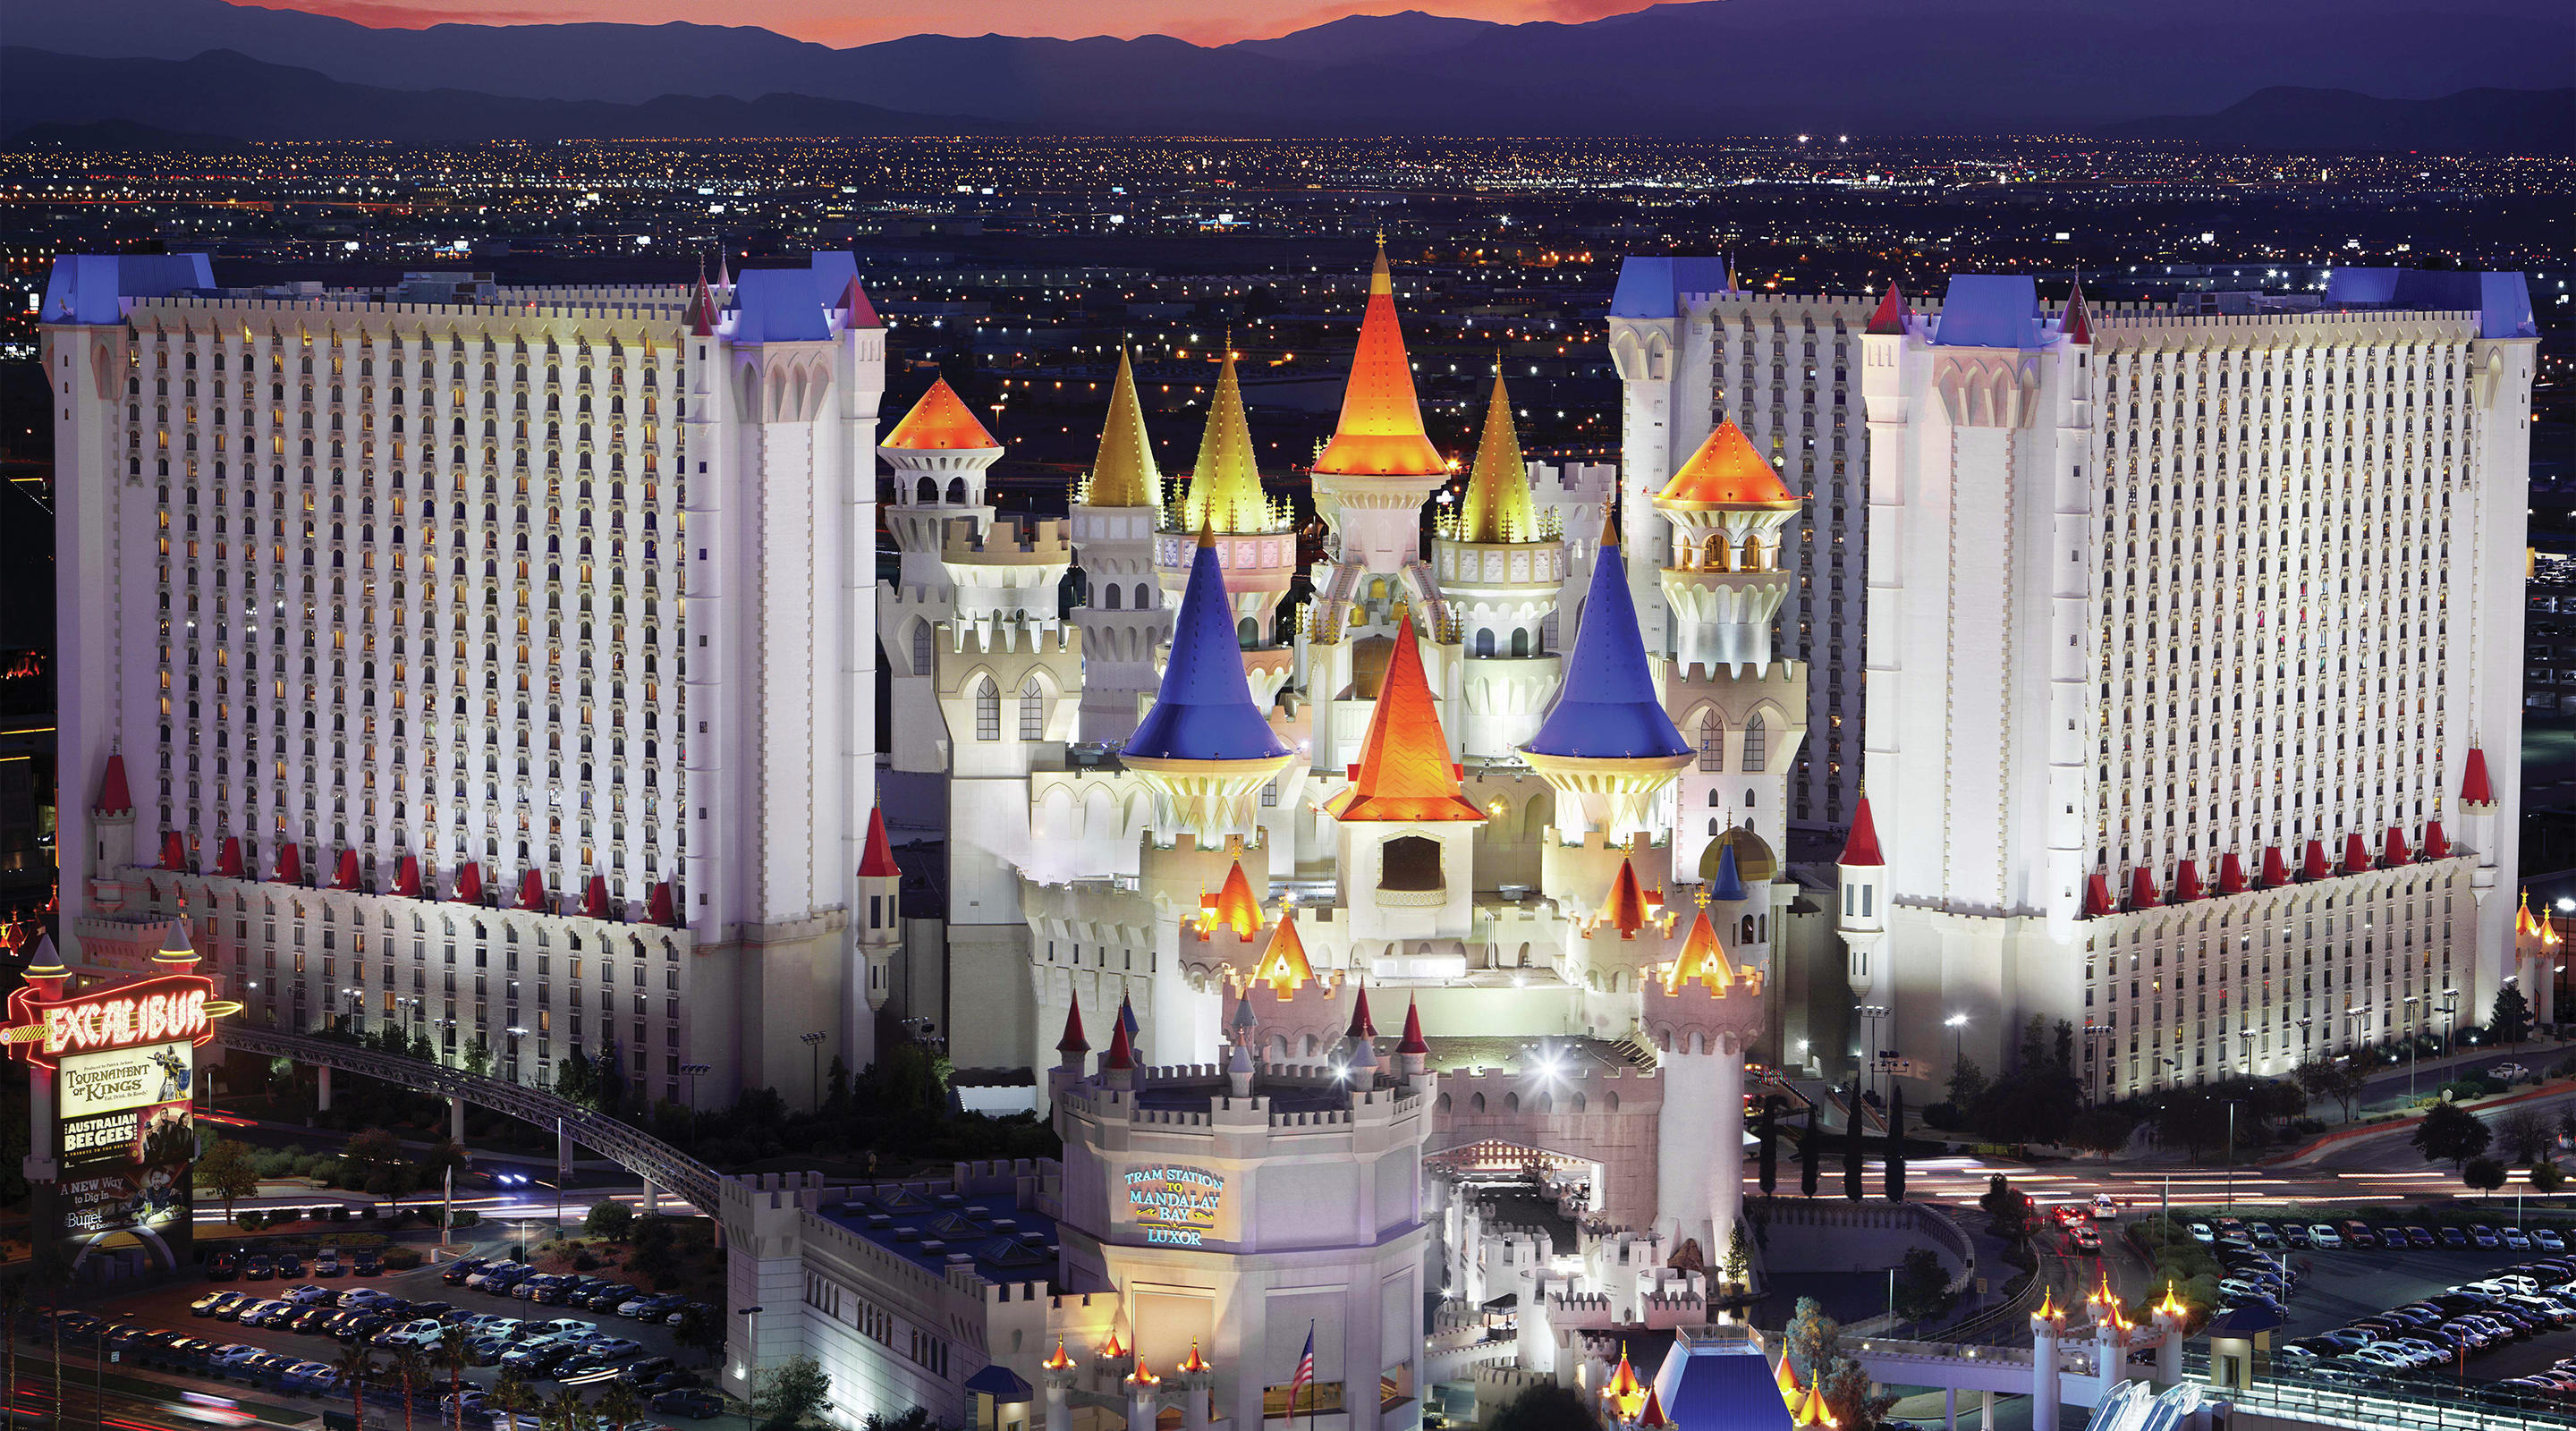 Save BIG with the best promotion codes and coupons Las Vegas has to offer. Use these FREE hotel promo codes and show discounts to book directly from the official hotel websites.